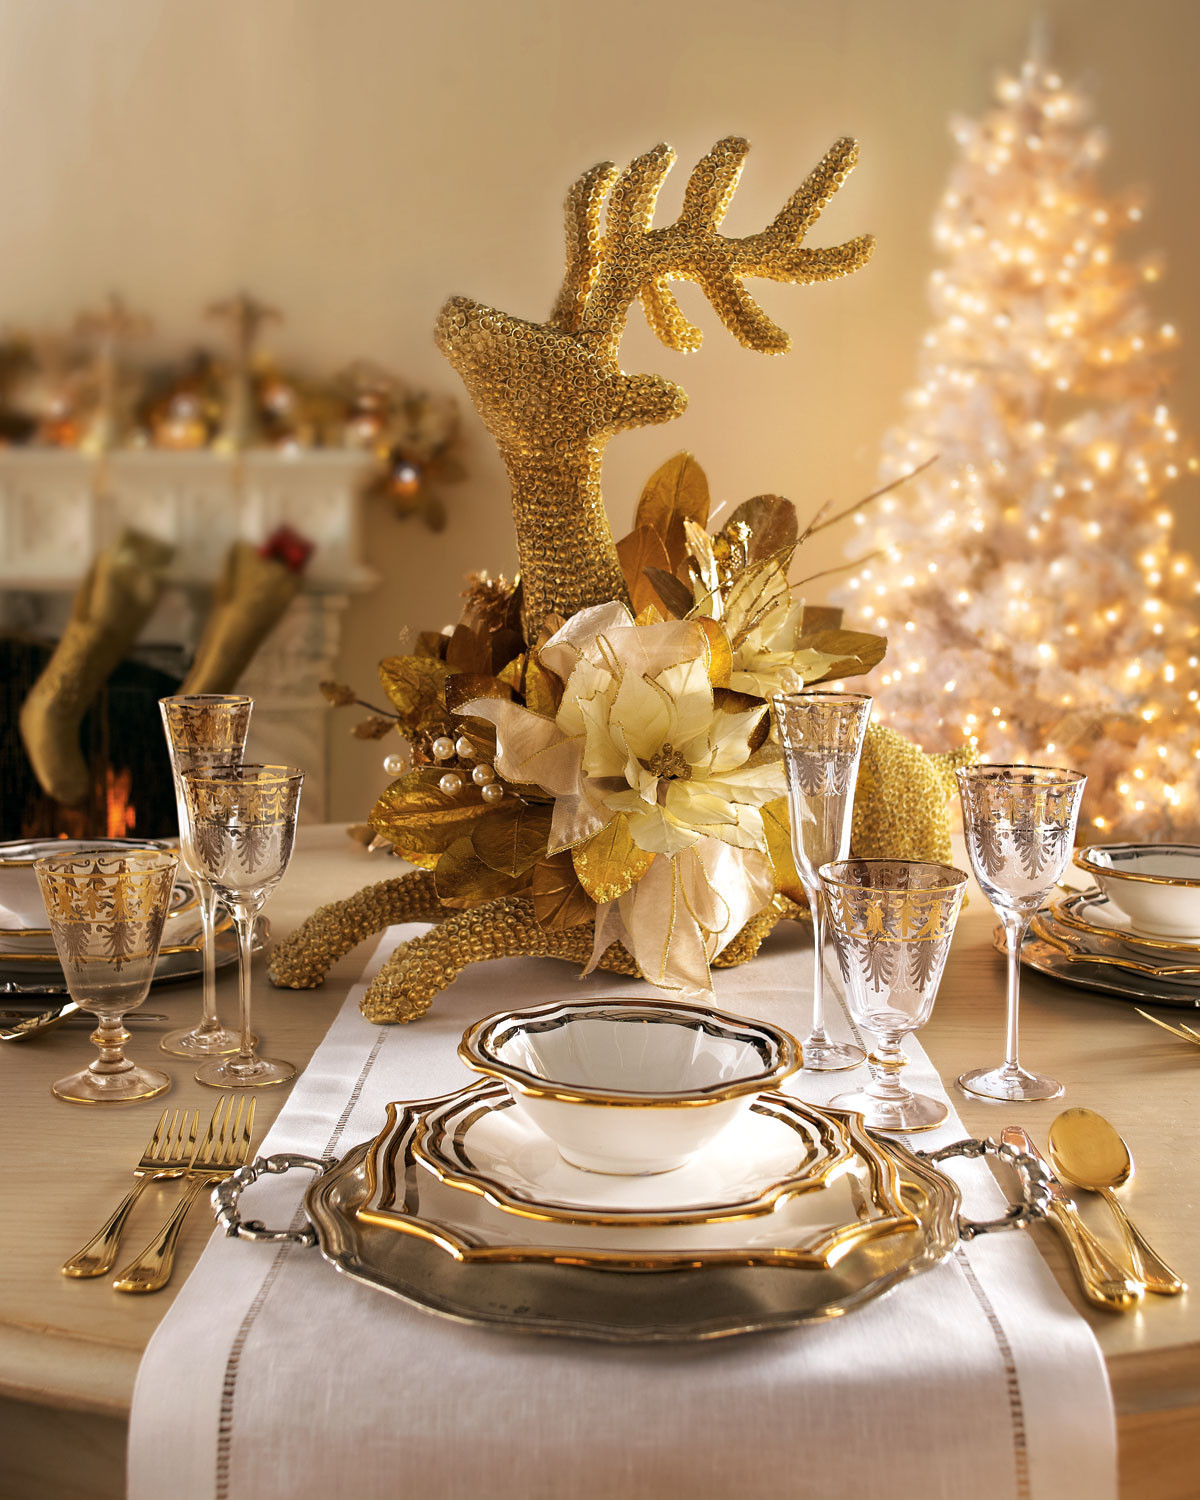 Christmas Dinner Table Decorations  A Golden Xmas